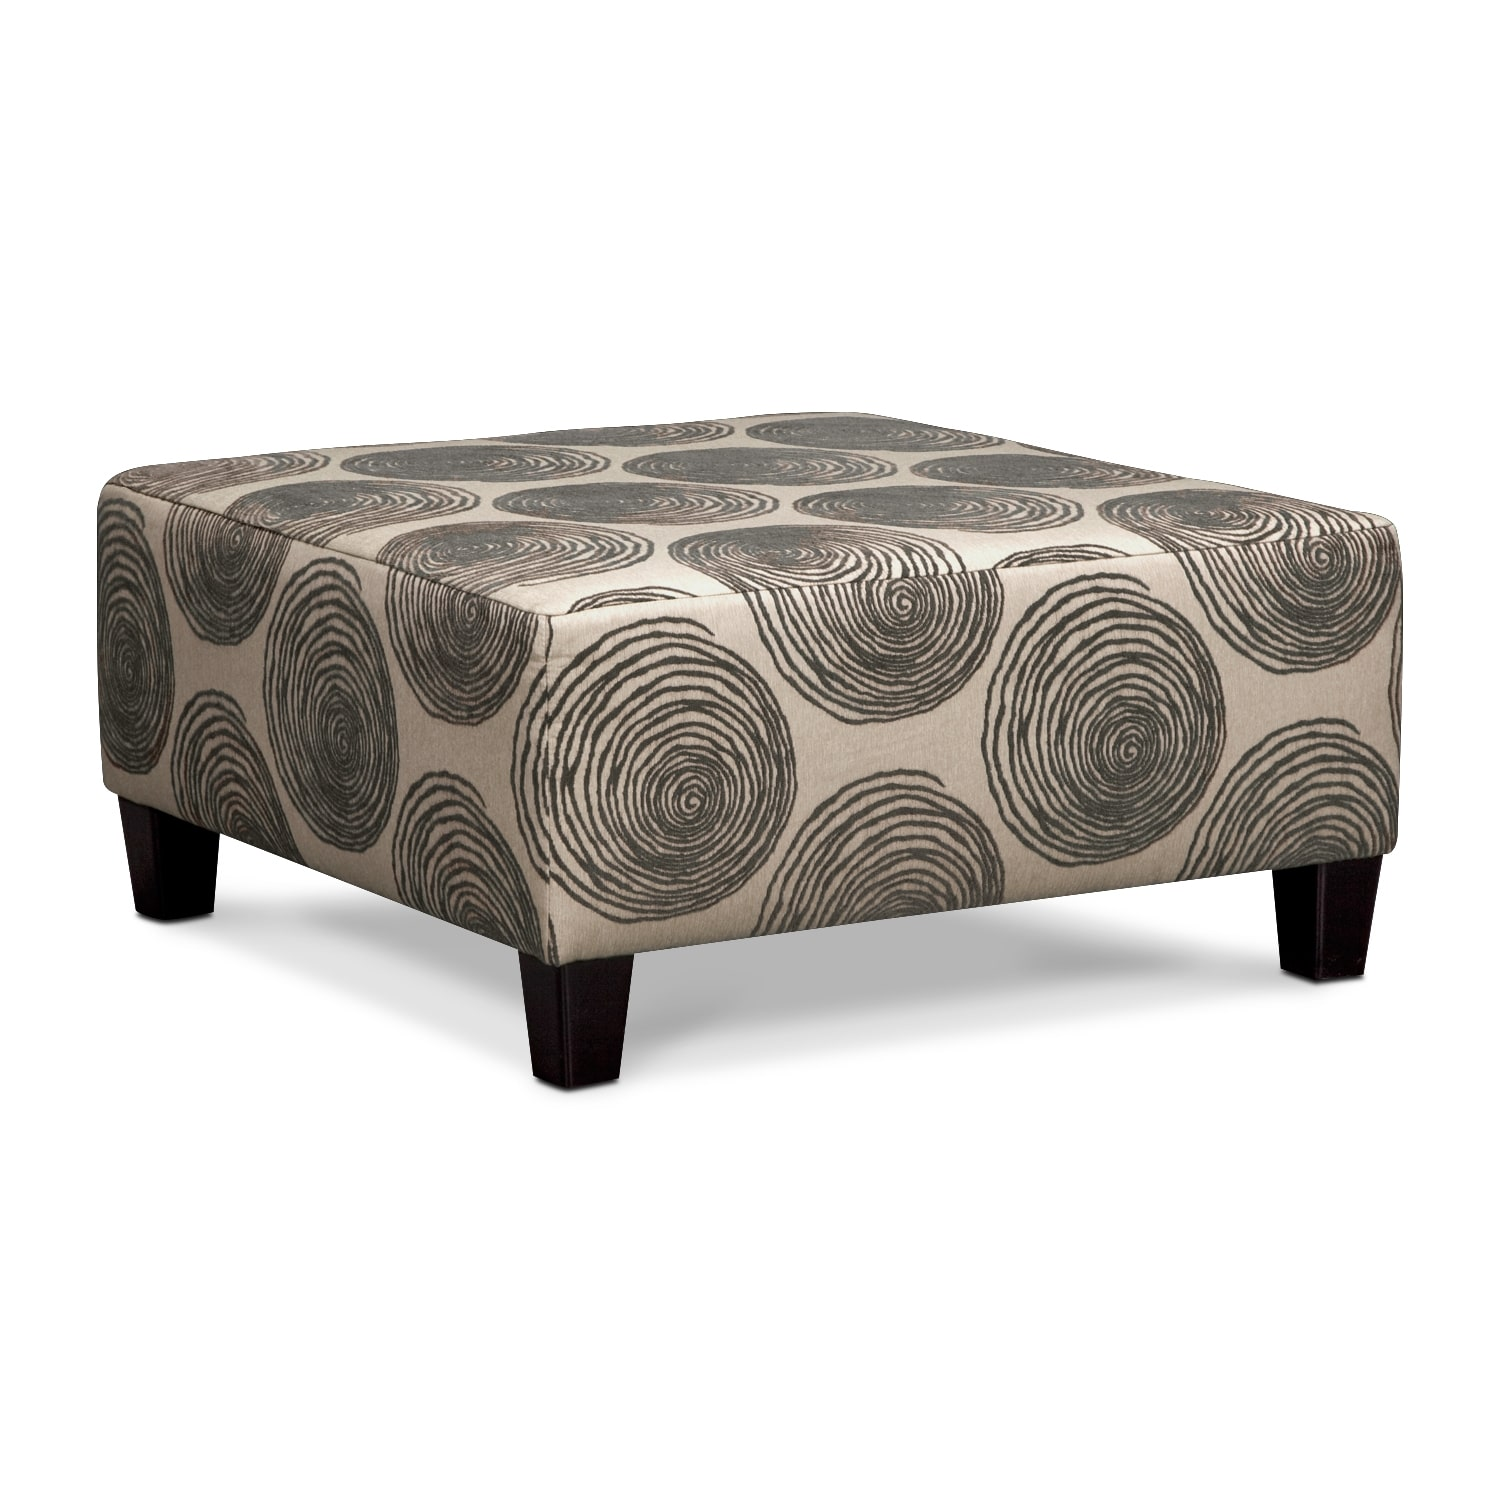 Cordelle 3 piece sectional and cocktail ottoman set gray for What is an ottoman for